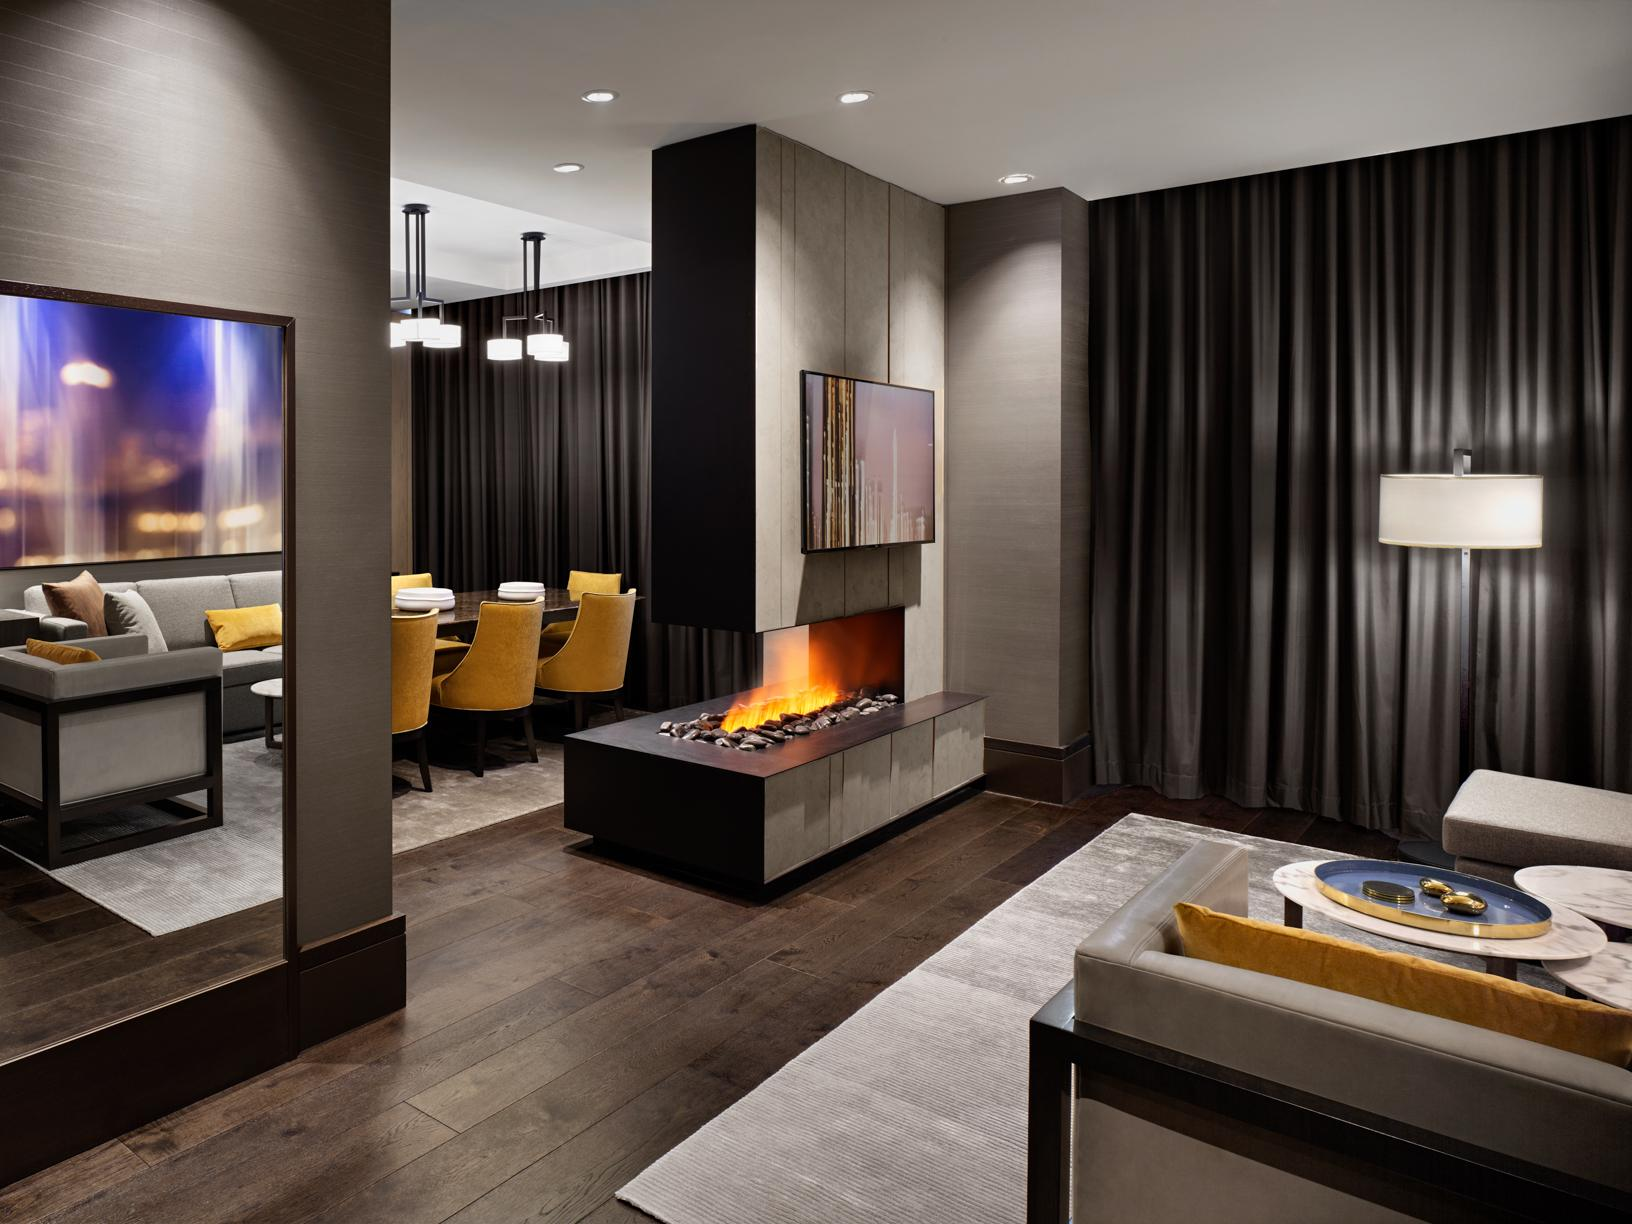 large hotel suite with dark hardwood floors showing a fireplace separating the living and dining areas with yellow accent furniture